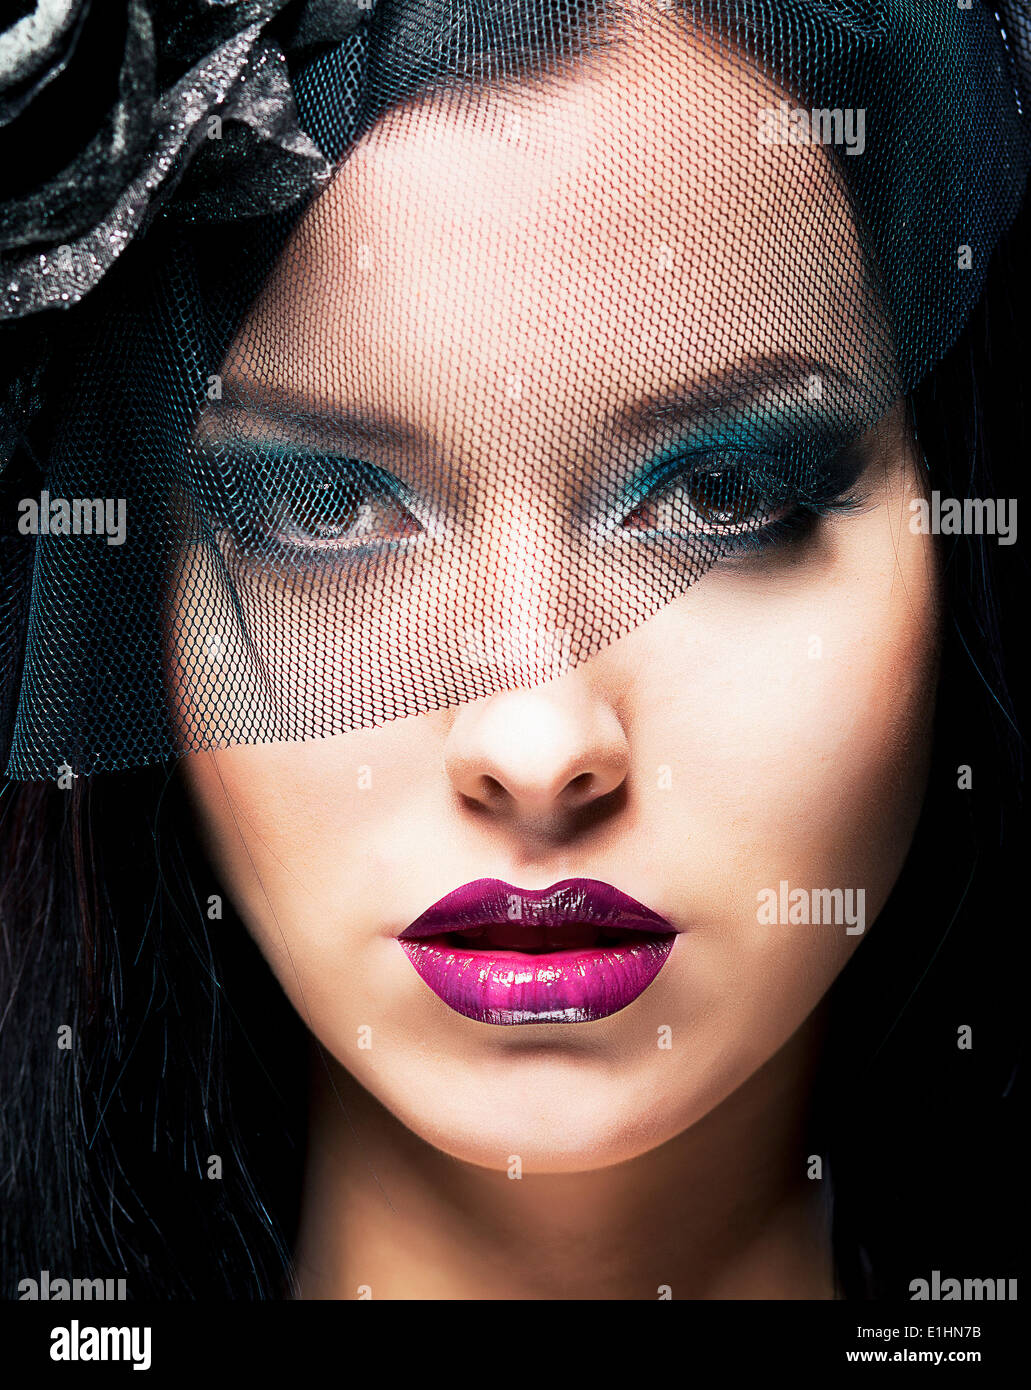 Romance. Portrait of Spectacular Styled Woman in Retro Black Veil - Stock Image